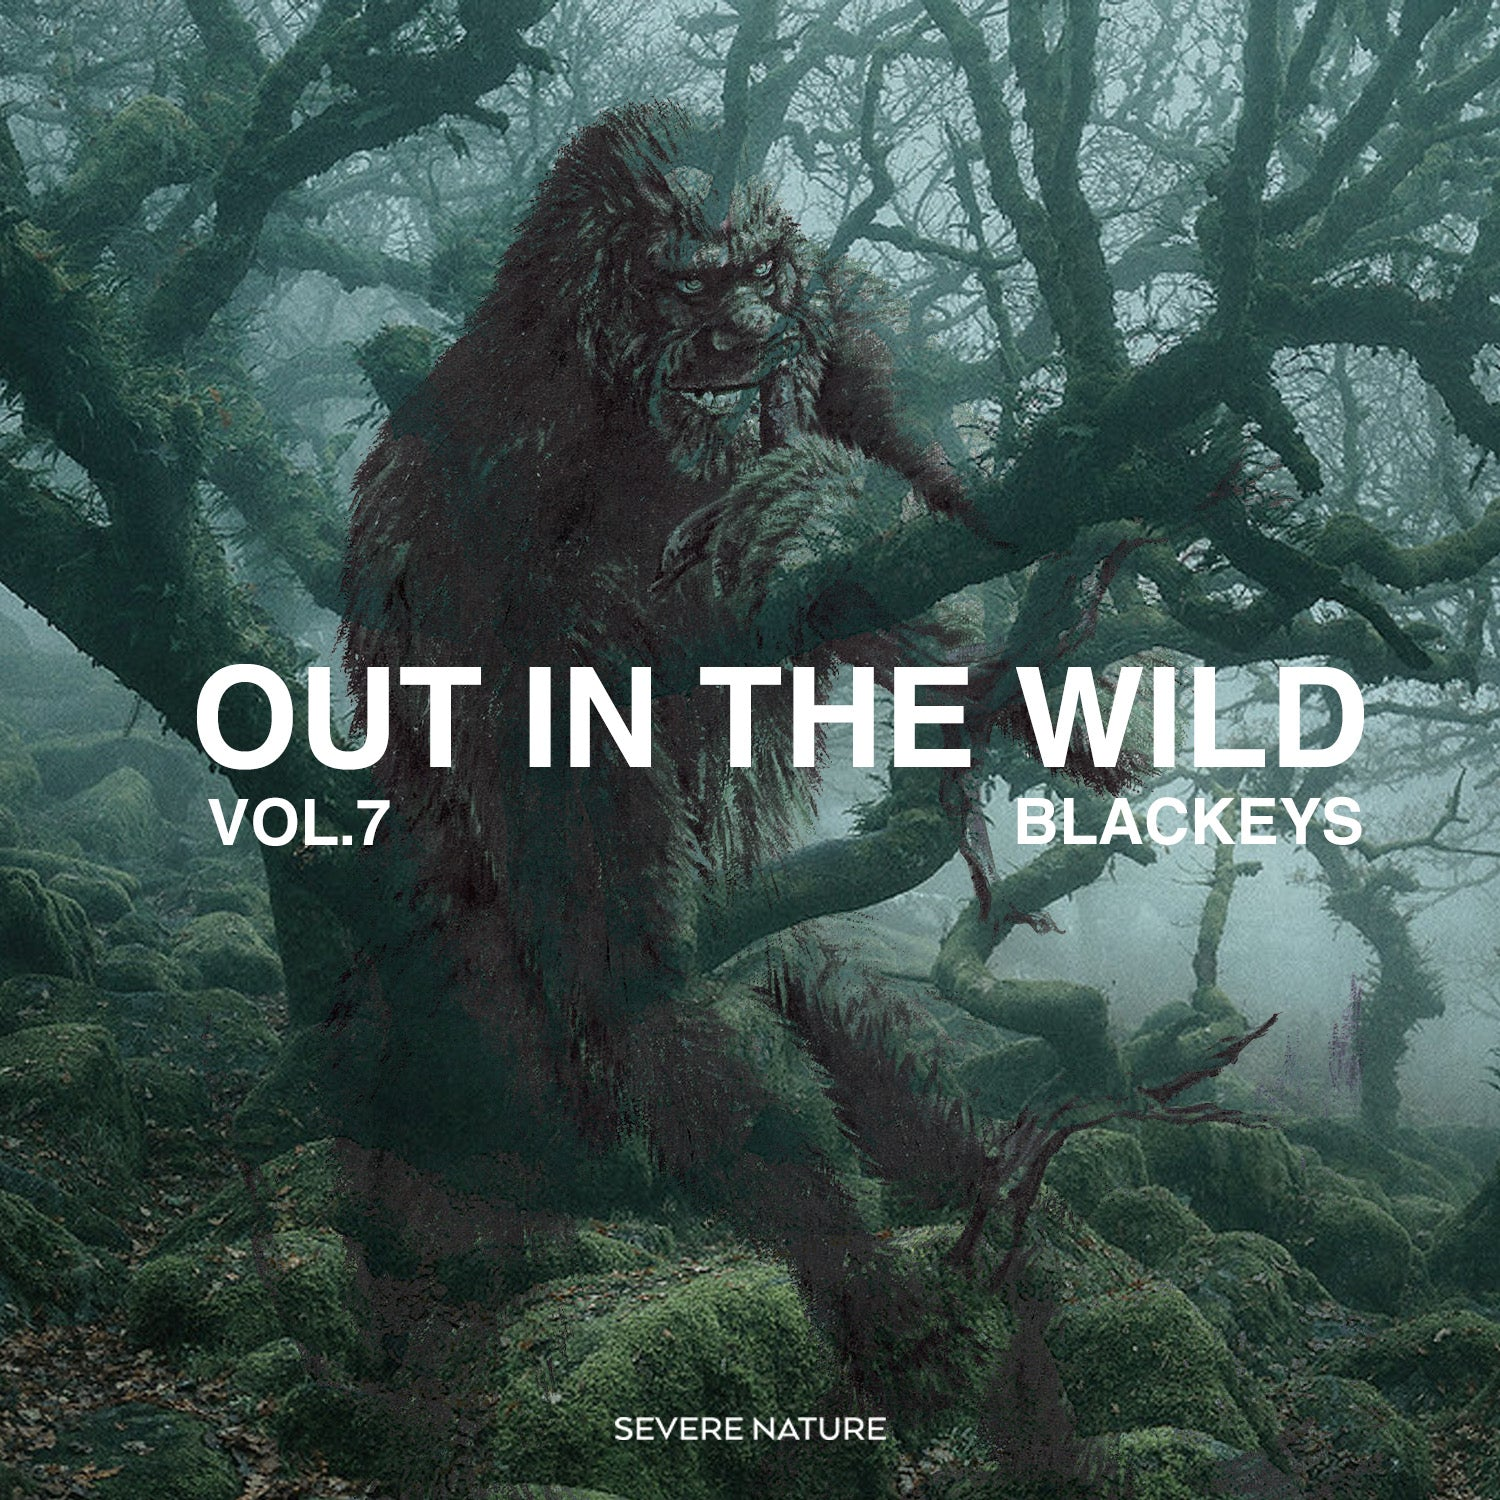 Out In The Wild Vol. 7 Curated by Blackeys